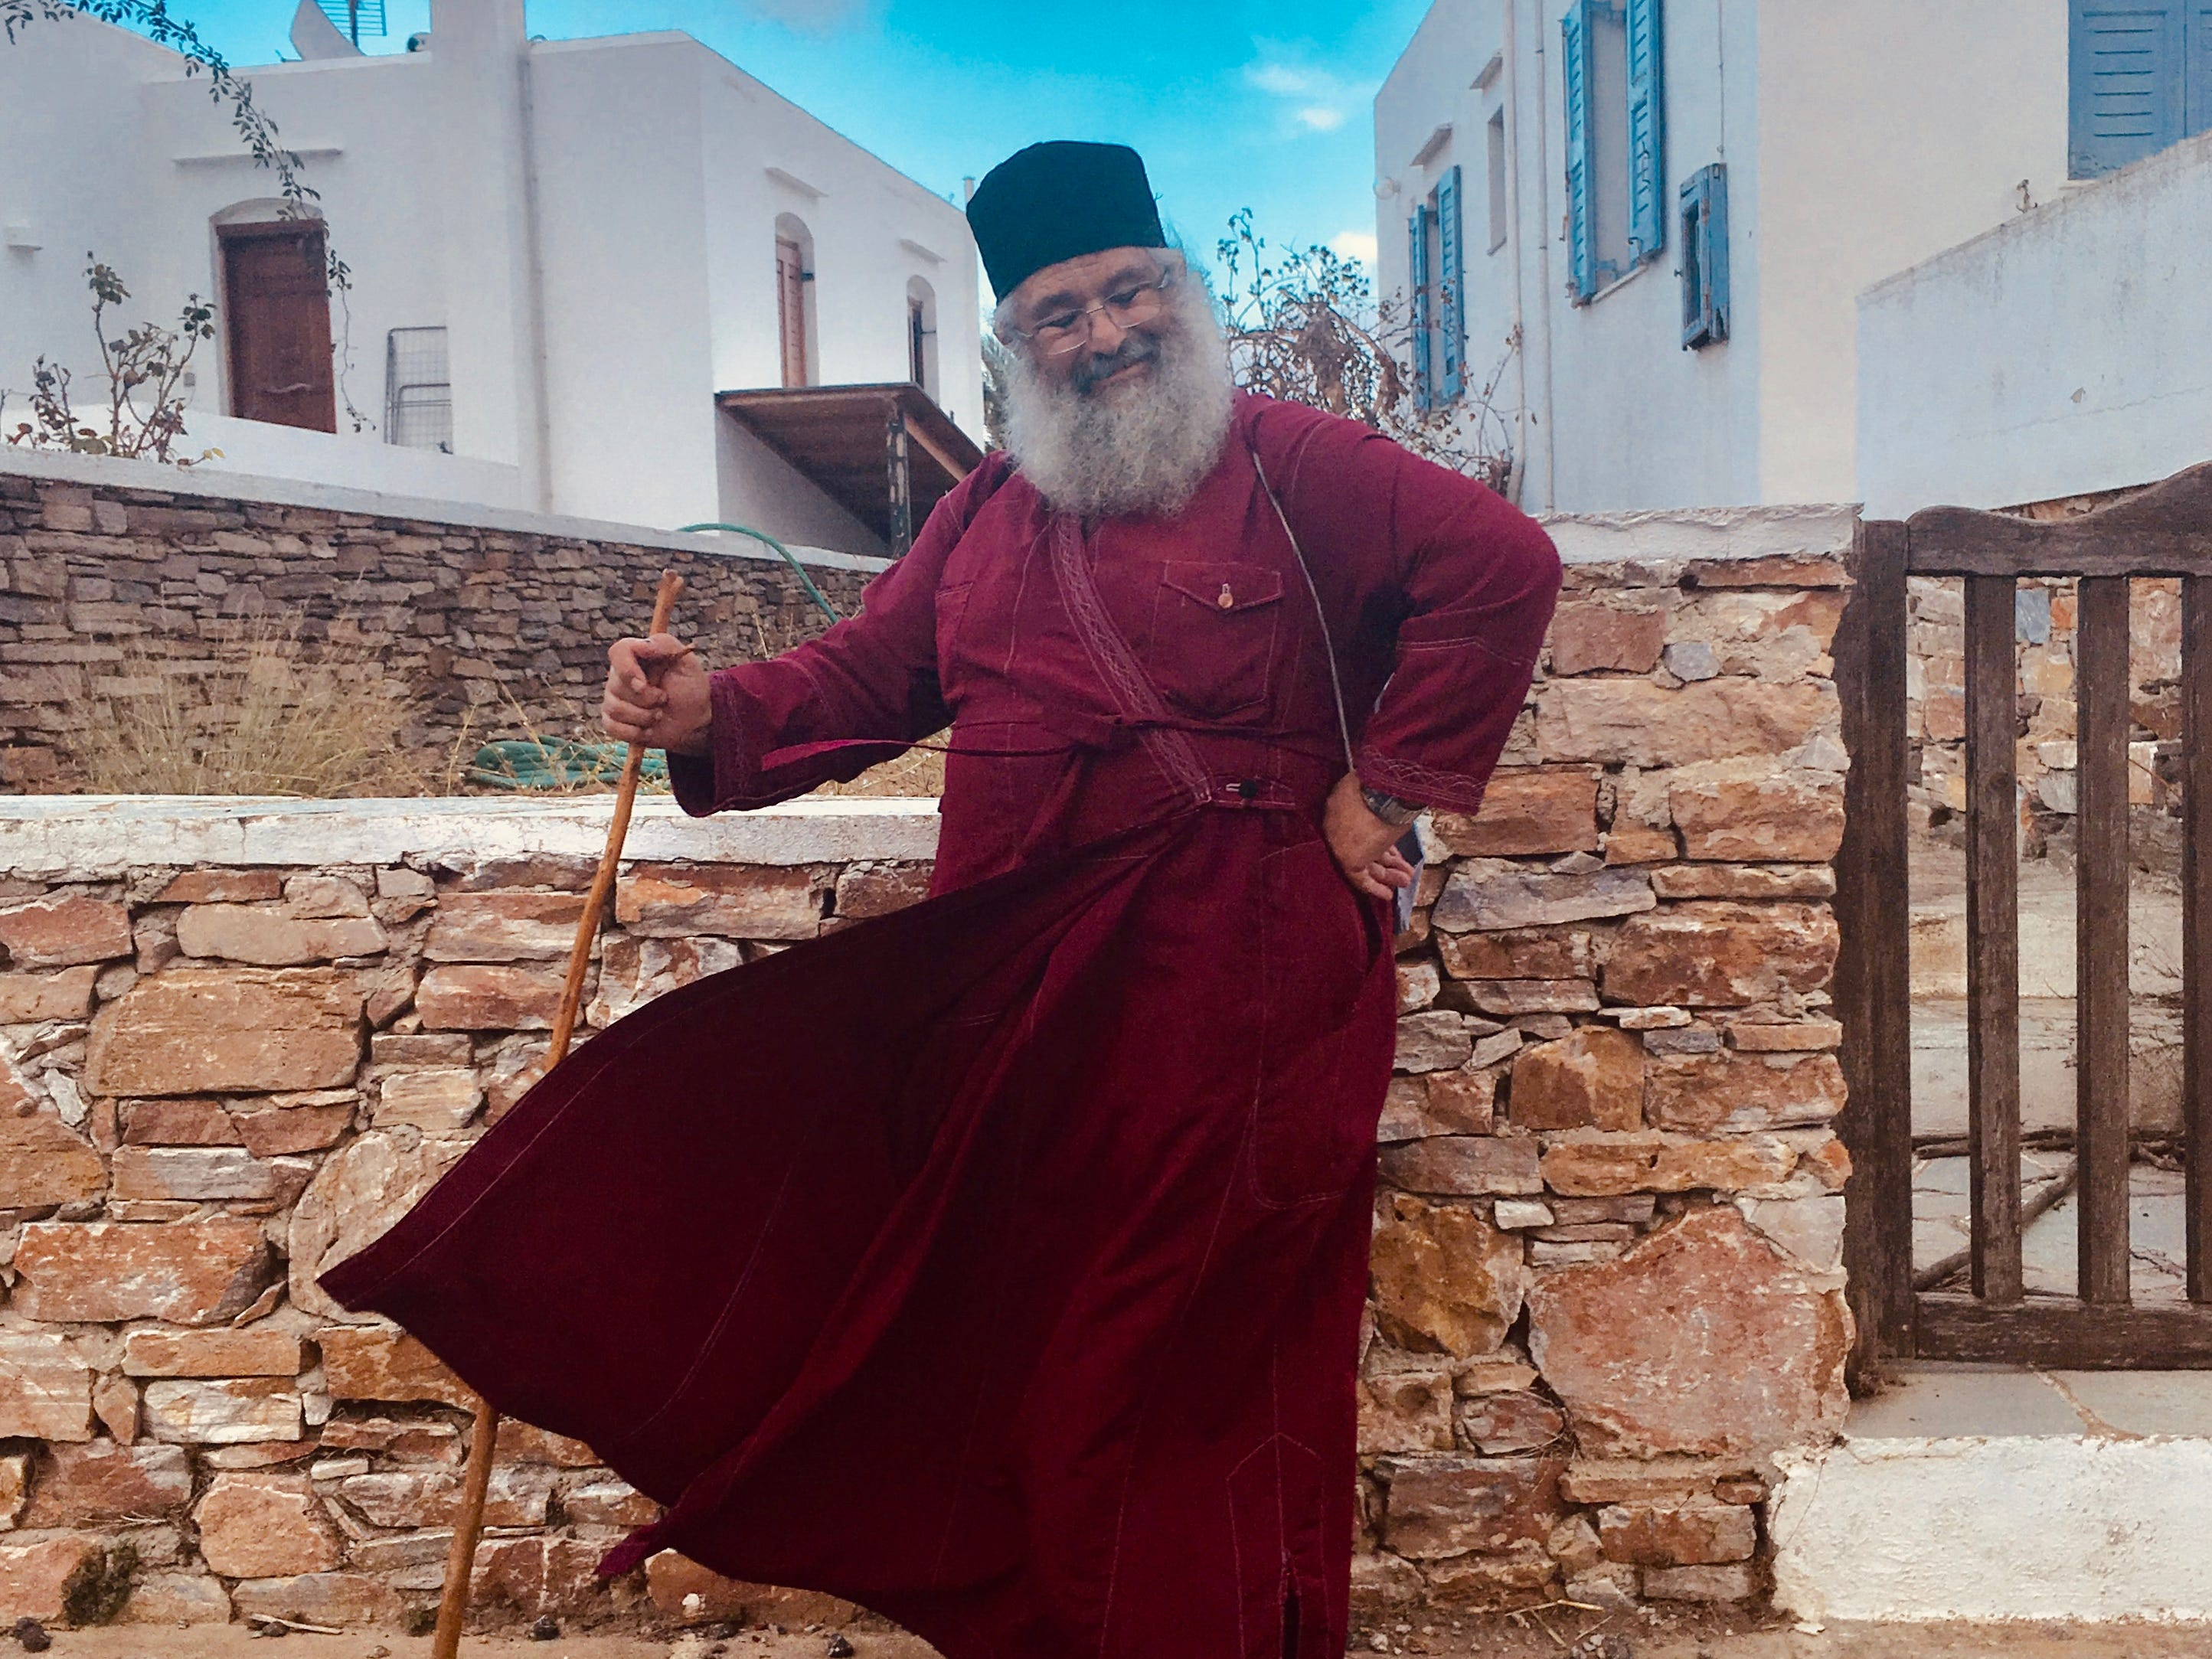 Greek islands with less tourism provide a greater chance for authentic experiences. Here a local priest poses for a photo.